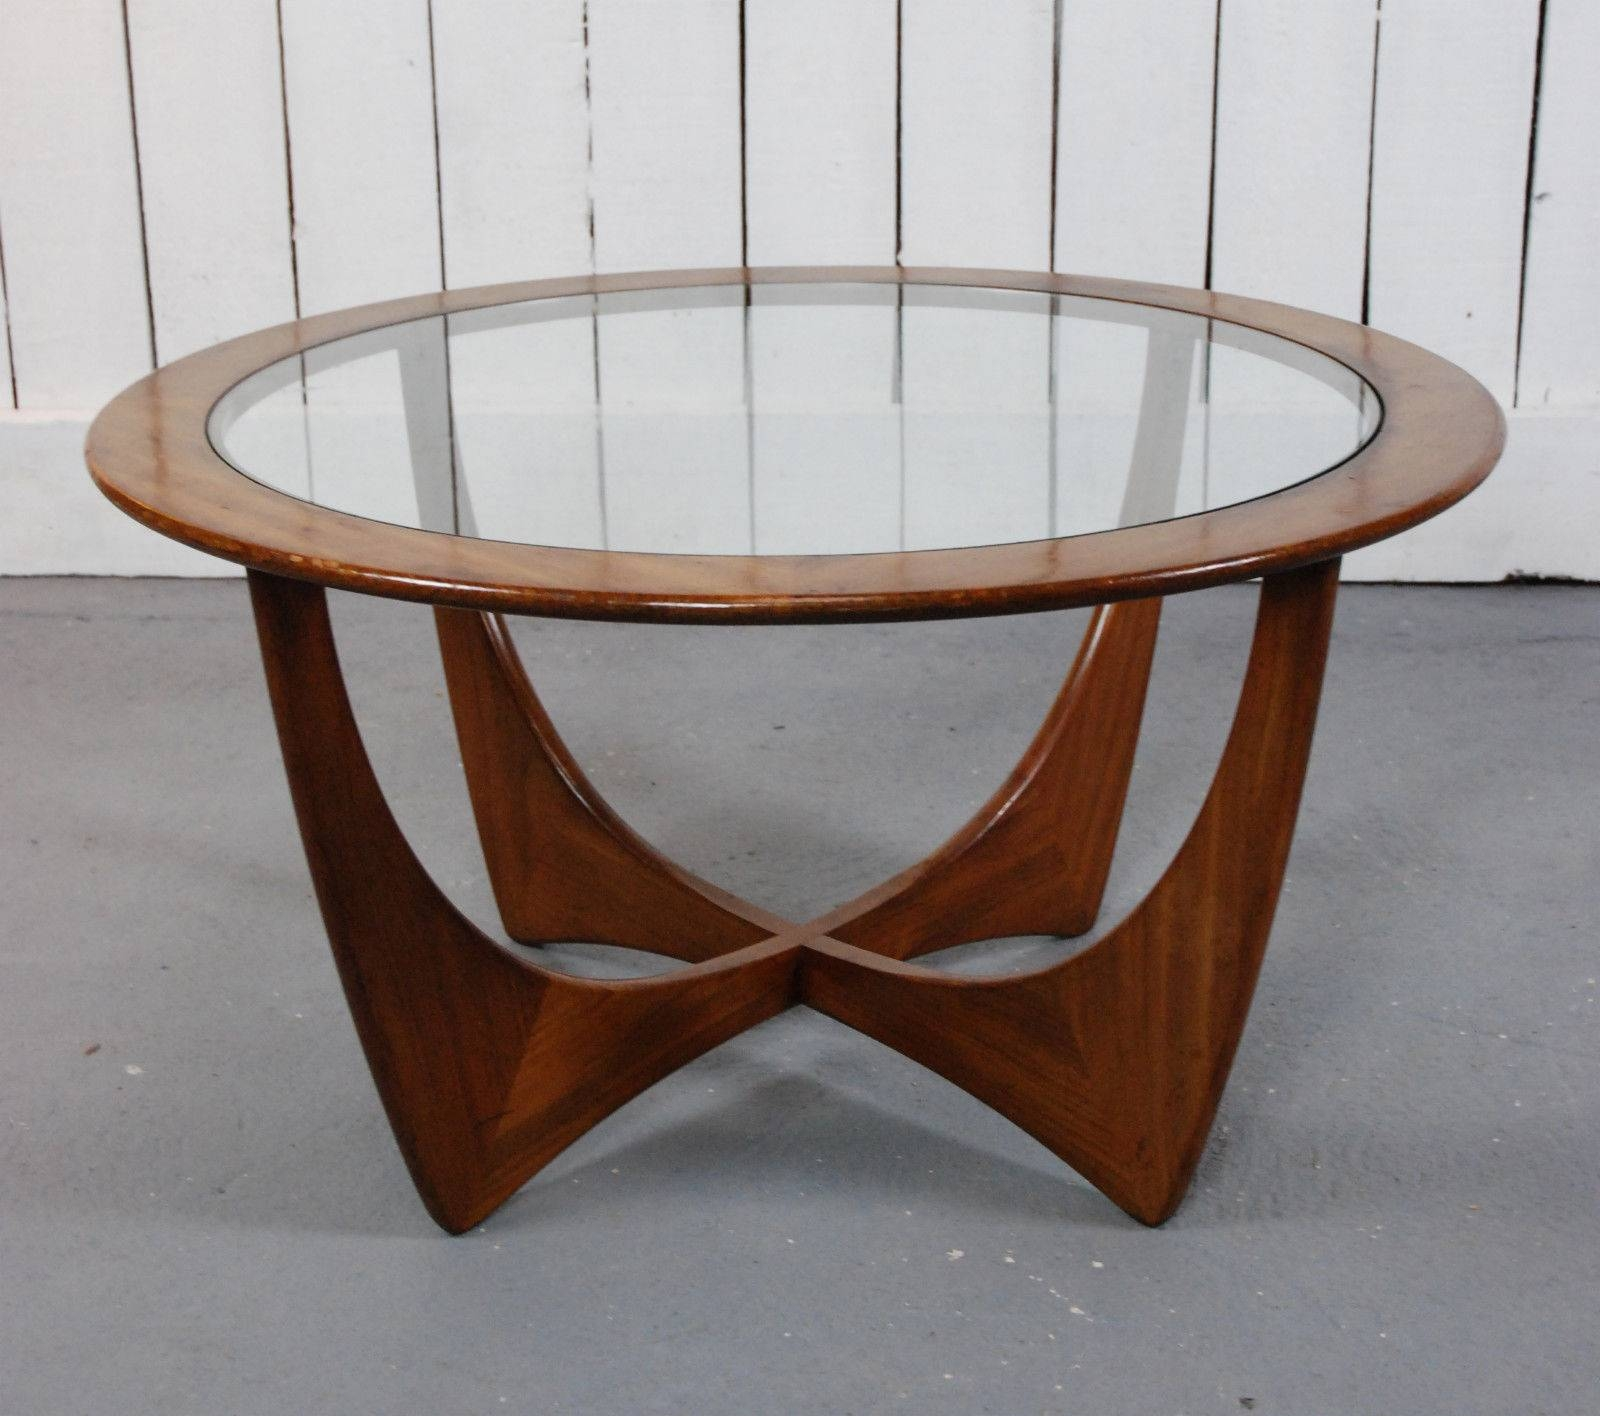 Wonderful Teak Coffee Table Oval Living Room Table Glossy Dark Intended For Retro Smoked Glass Coffee Tables (View 2 of 30)